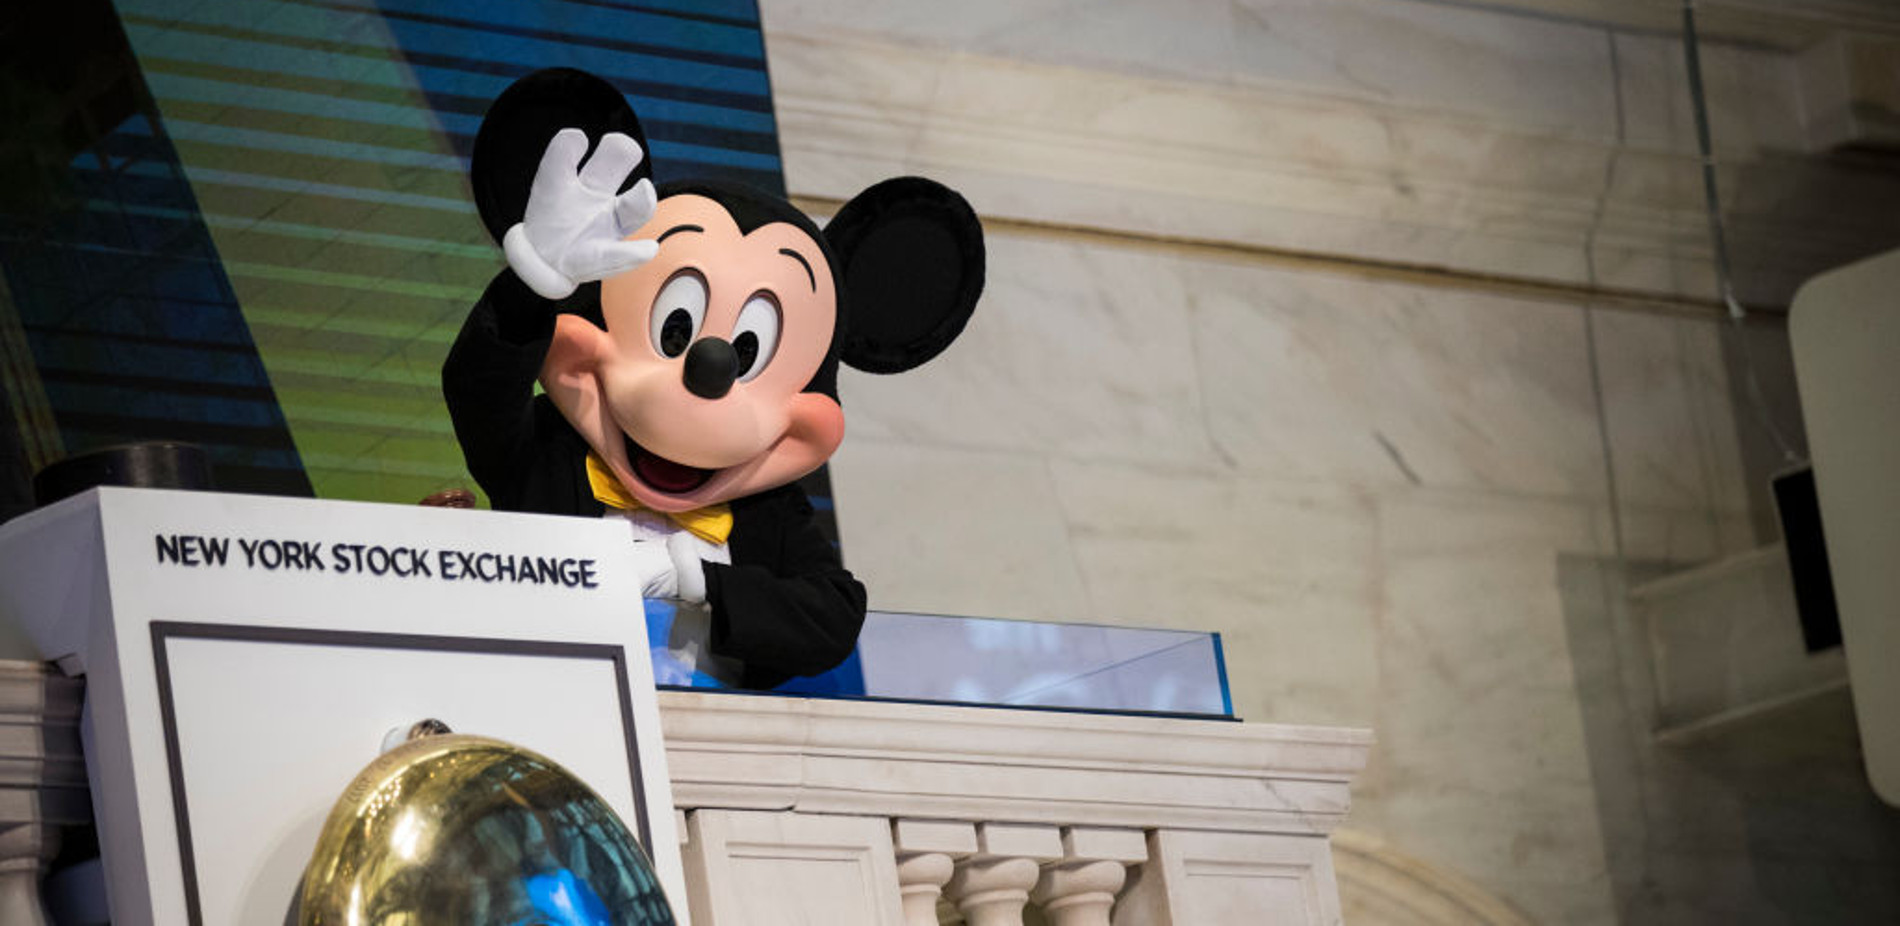 Disney and pixar merger impact on stock